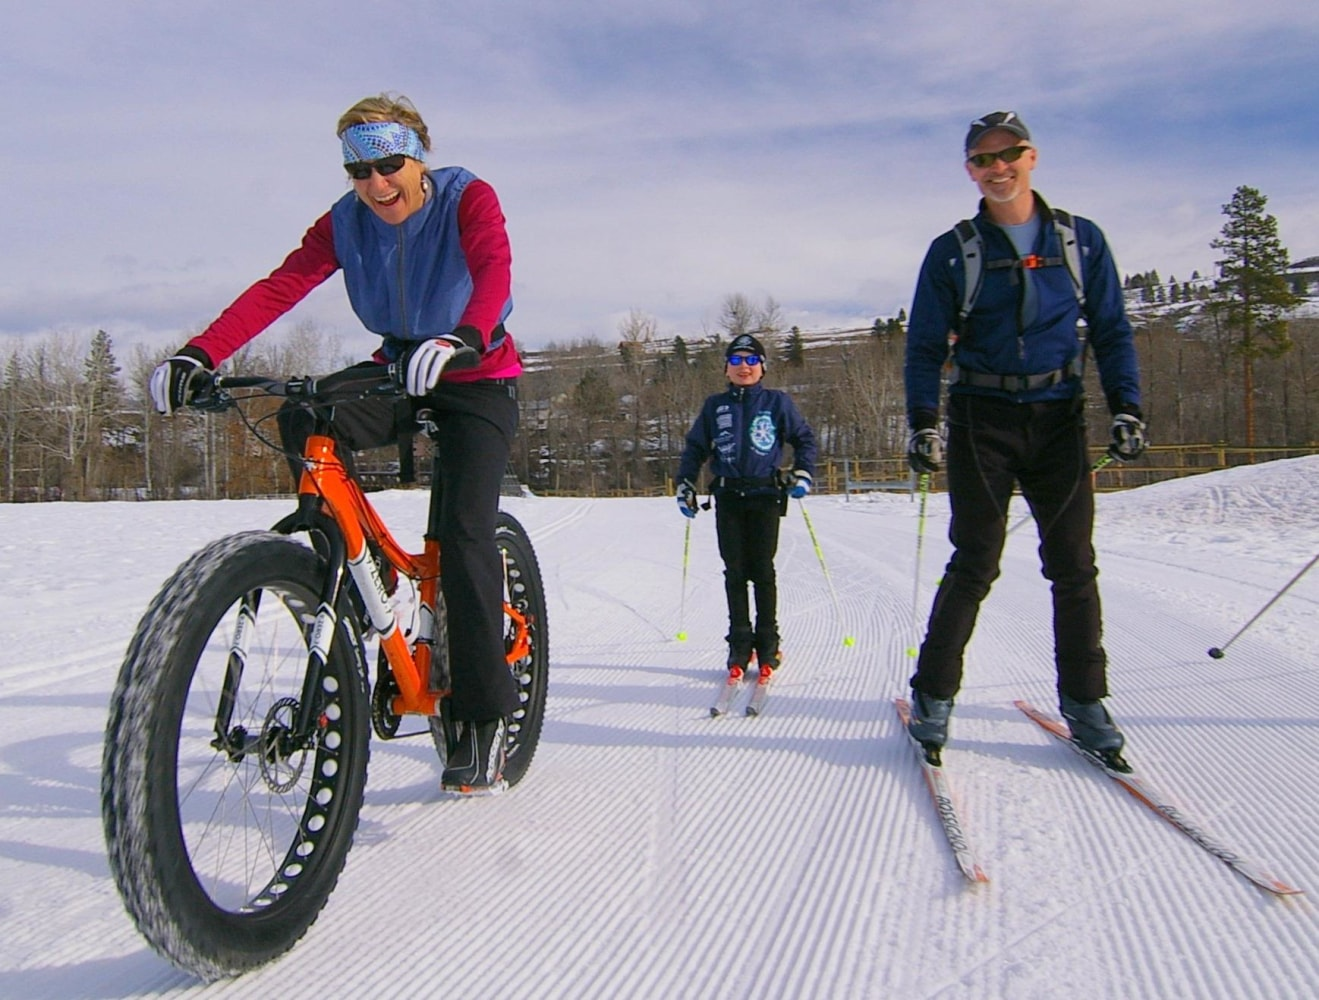 Over Sized Fun Riders Float Over The Snow On Fat Bikes Nbc News